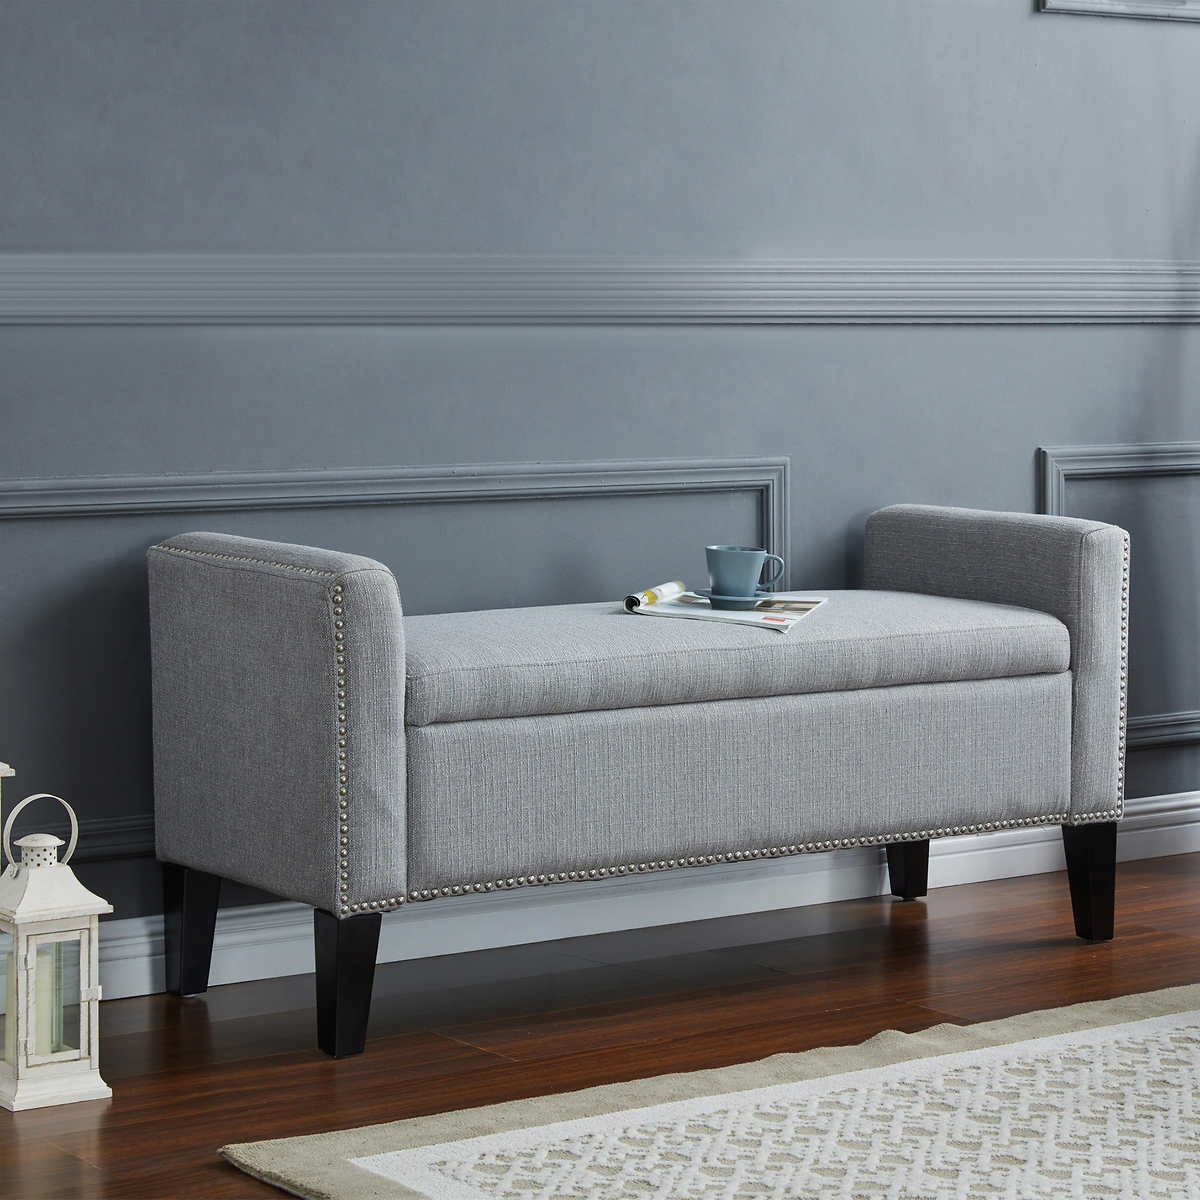 Costco light gray storage bench